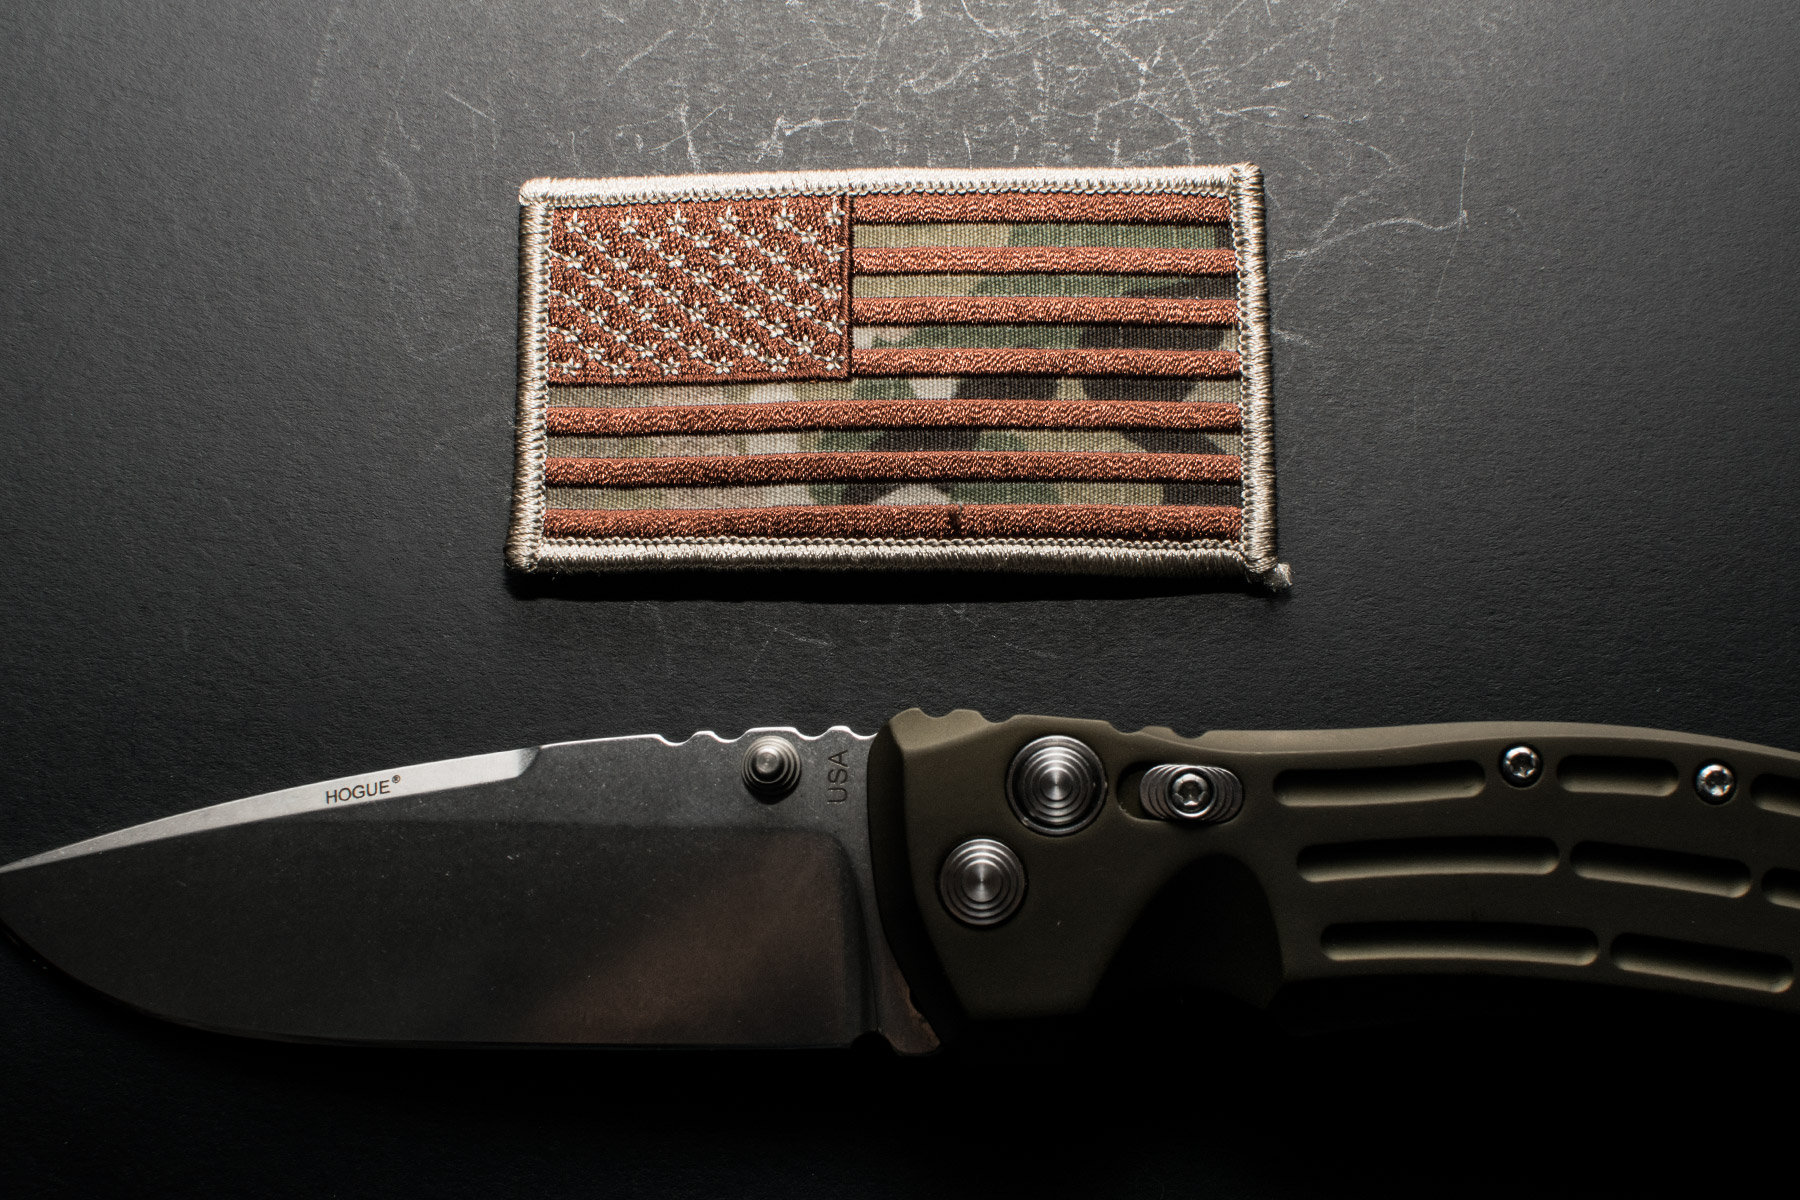 Hogue Knives Review